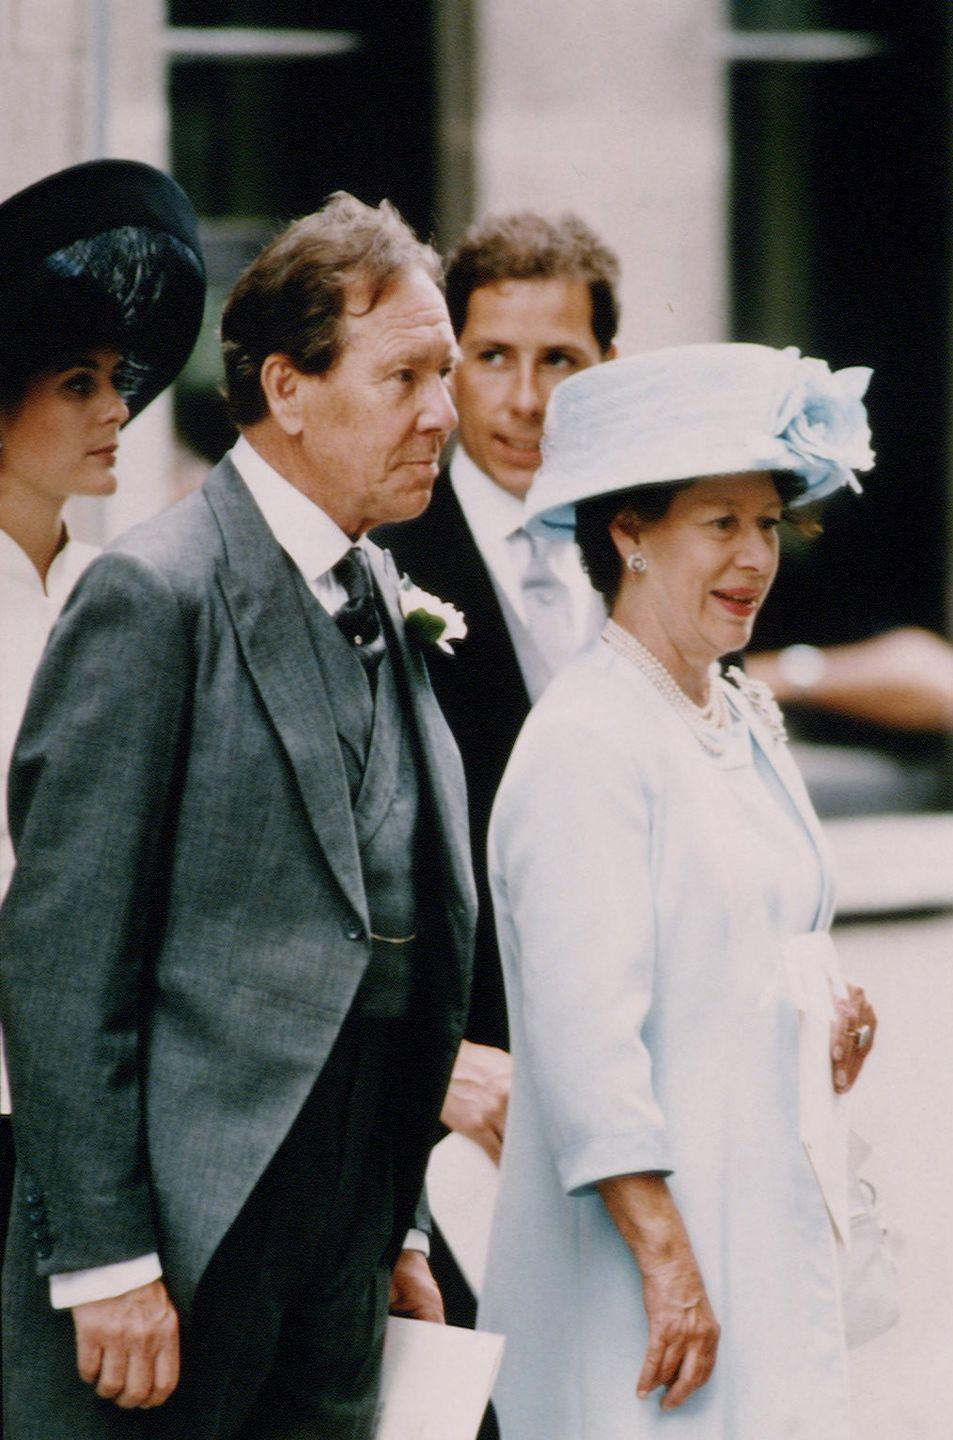 <p>After their divorce in 1978, Princess Margaret and Anthony Armstrong-Jones reunited for their daughter Sarah's wedding to Daniel Chatto, an artist and former actor. </p>